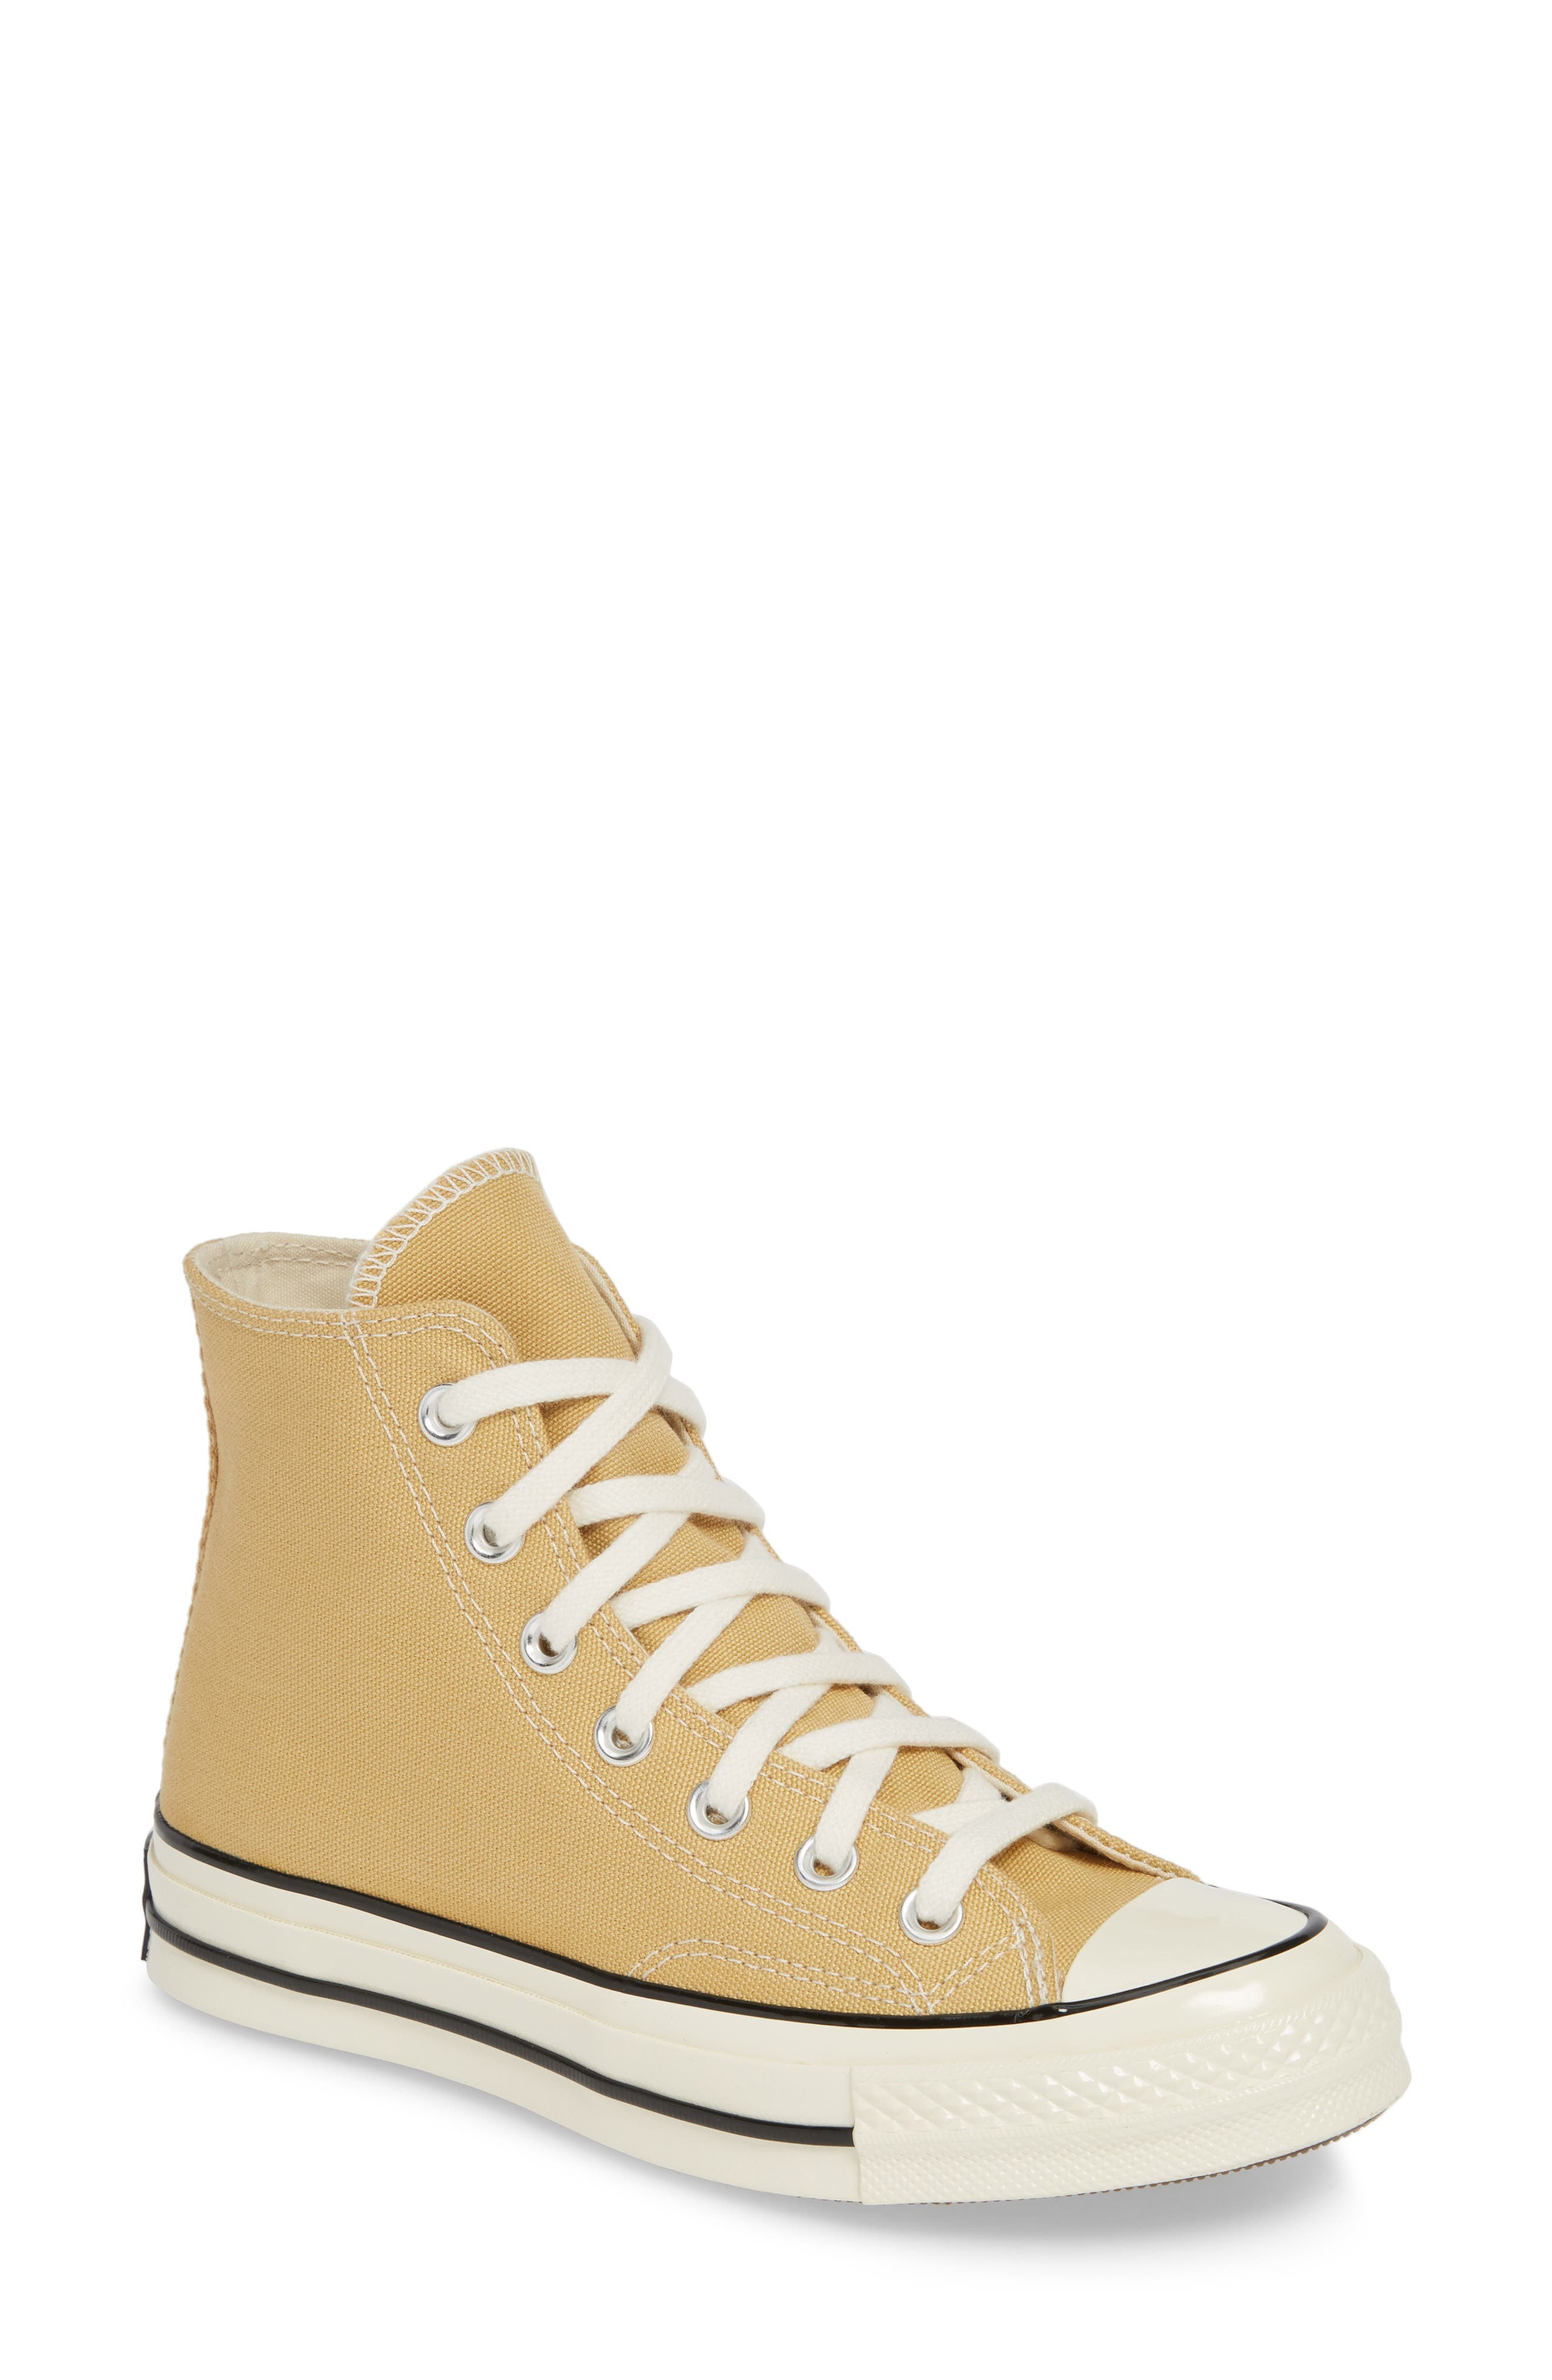 ,                             Chuck Taylor<sup>®</sup> All Star<sup>®</sup> 70 High Top Sneaker,                             Main thumbnail 1, color,                             CLUB GOLD/ EGRET/ BLACK